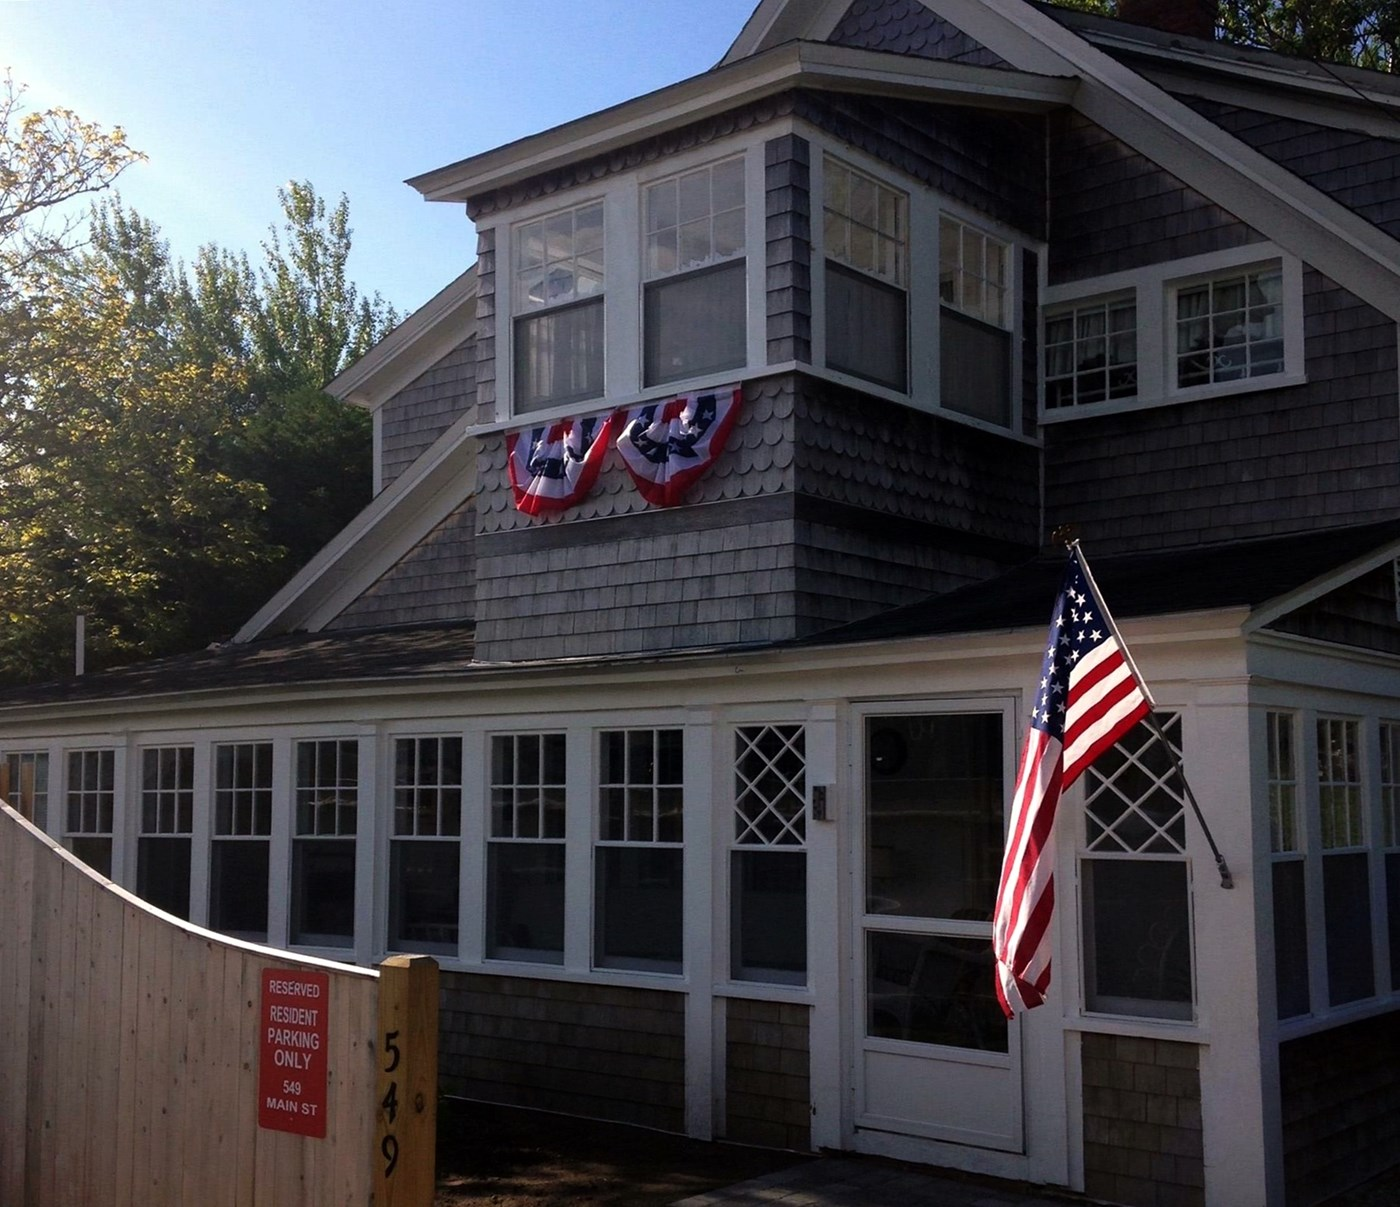 Harwich Vacation Rental Home In Cape Cod MA 02646, Less